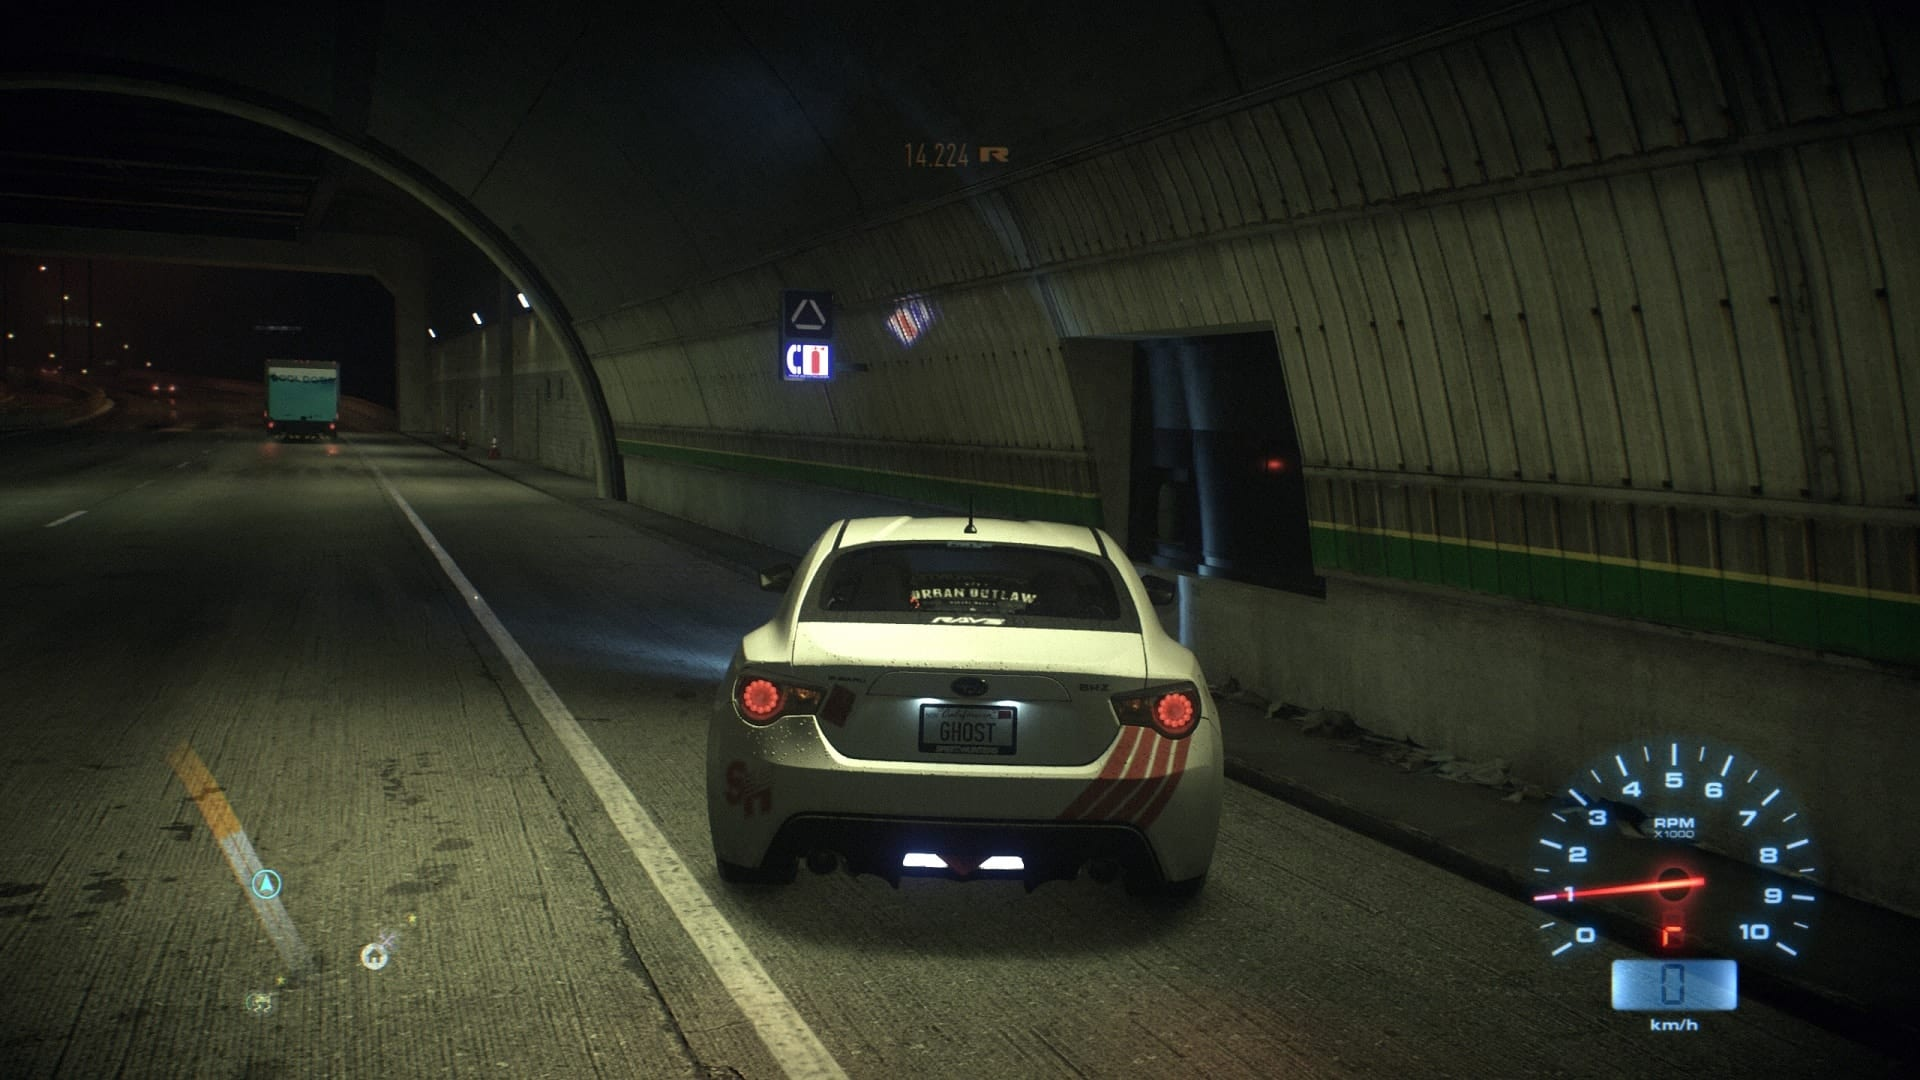 Occlusione Ambientale NO - Need for Speed - Recensione